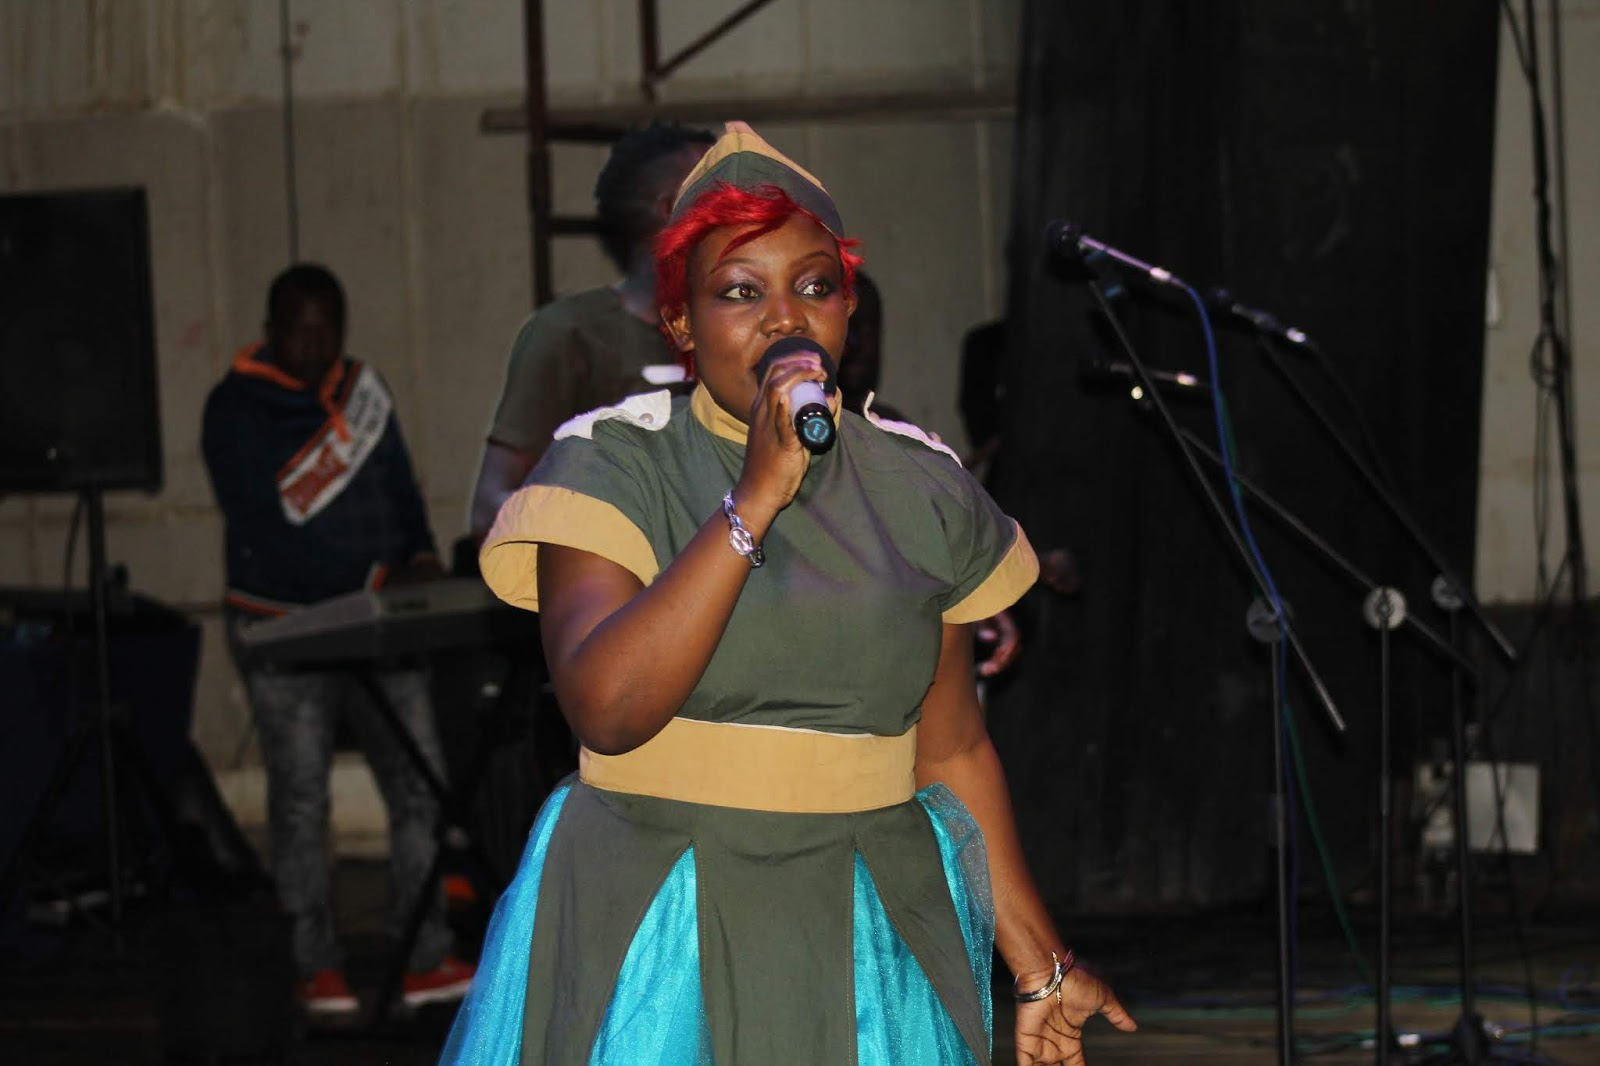 Bethany Pasinawako Ngolomi Wows Crowds at Deliverance All-Night